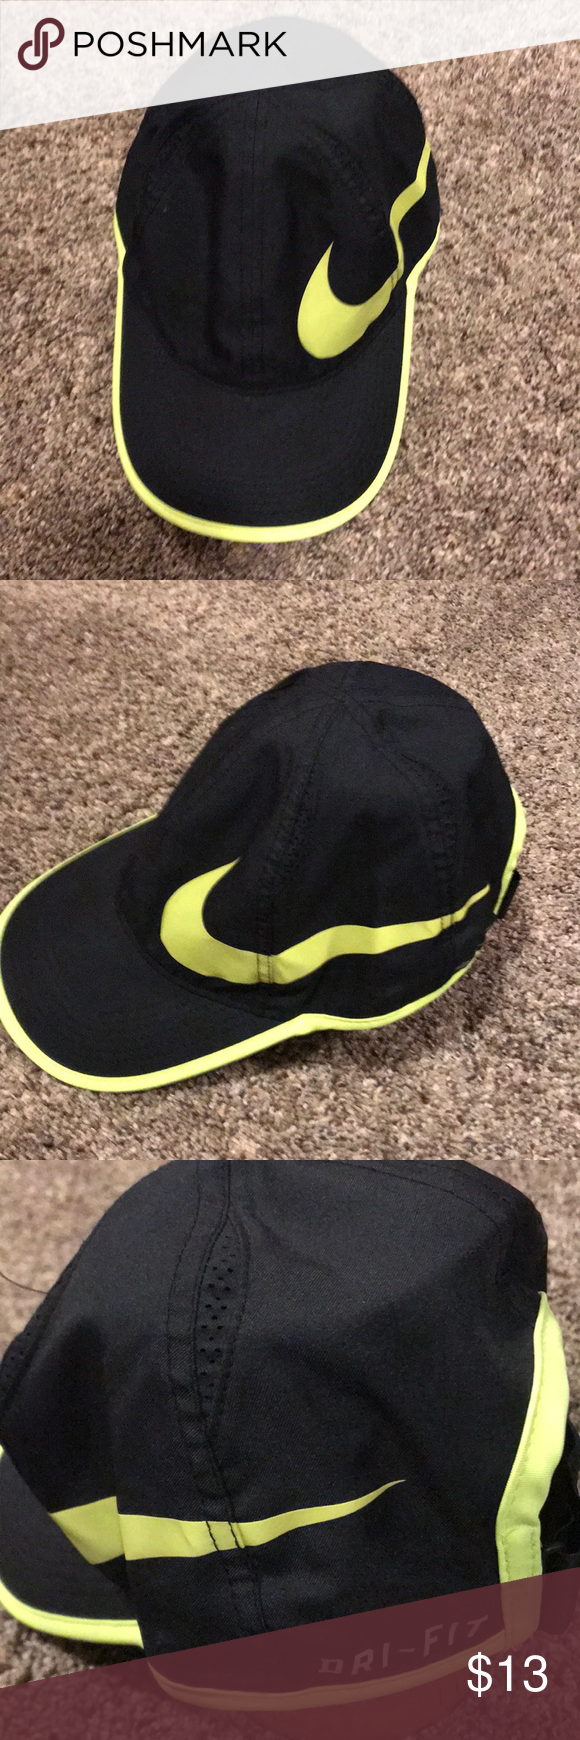 Nike Featherlight Dri Fit Hat Fitted Hats Nike Nike Accessories